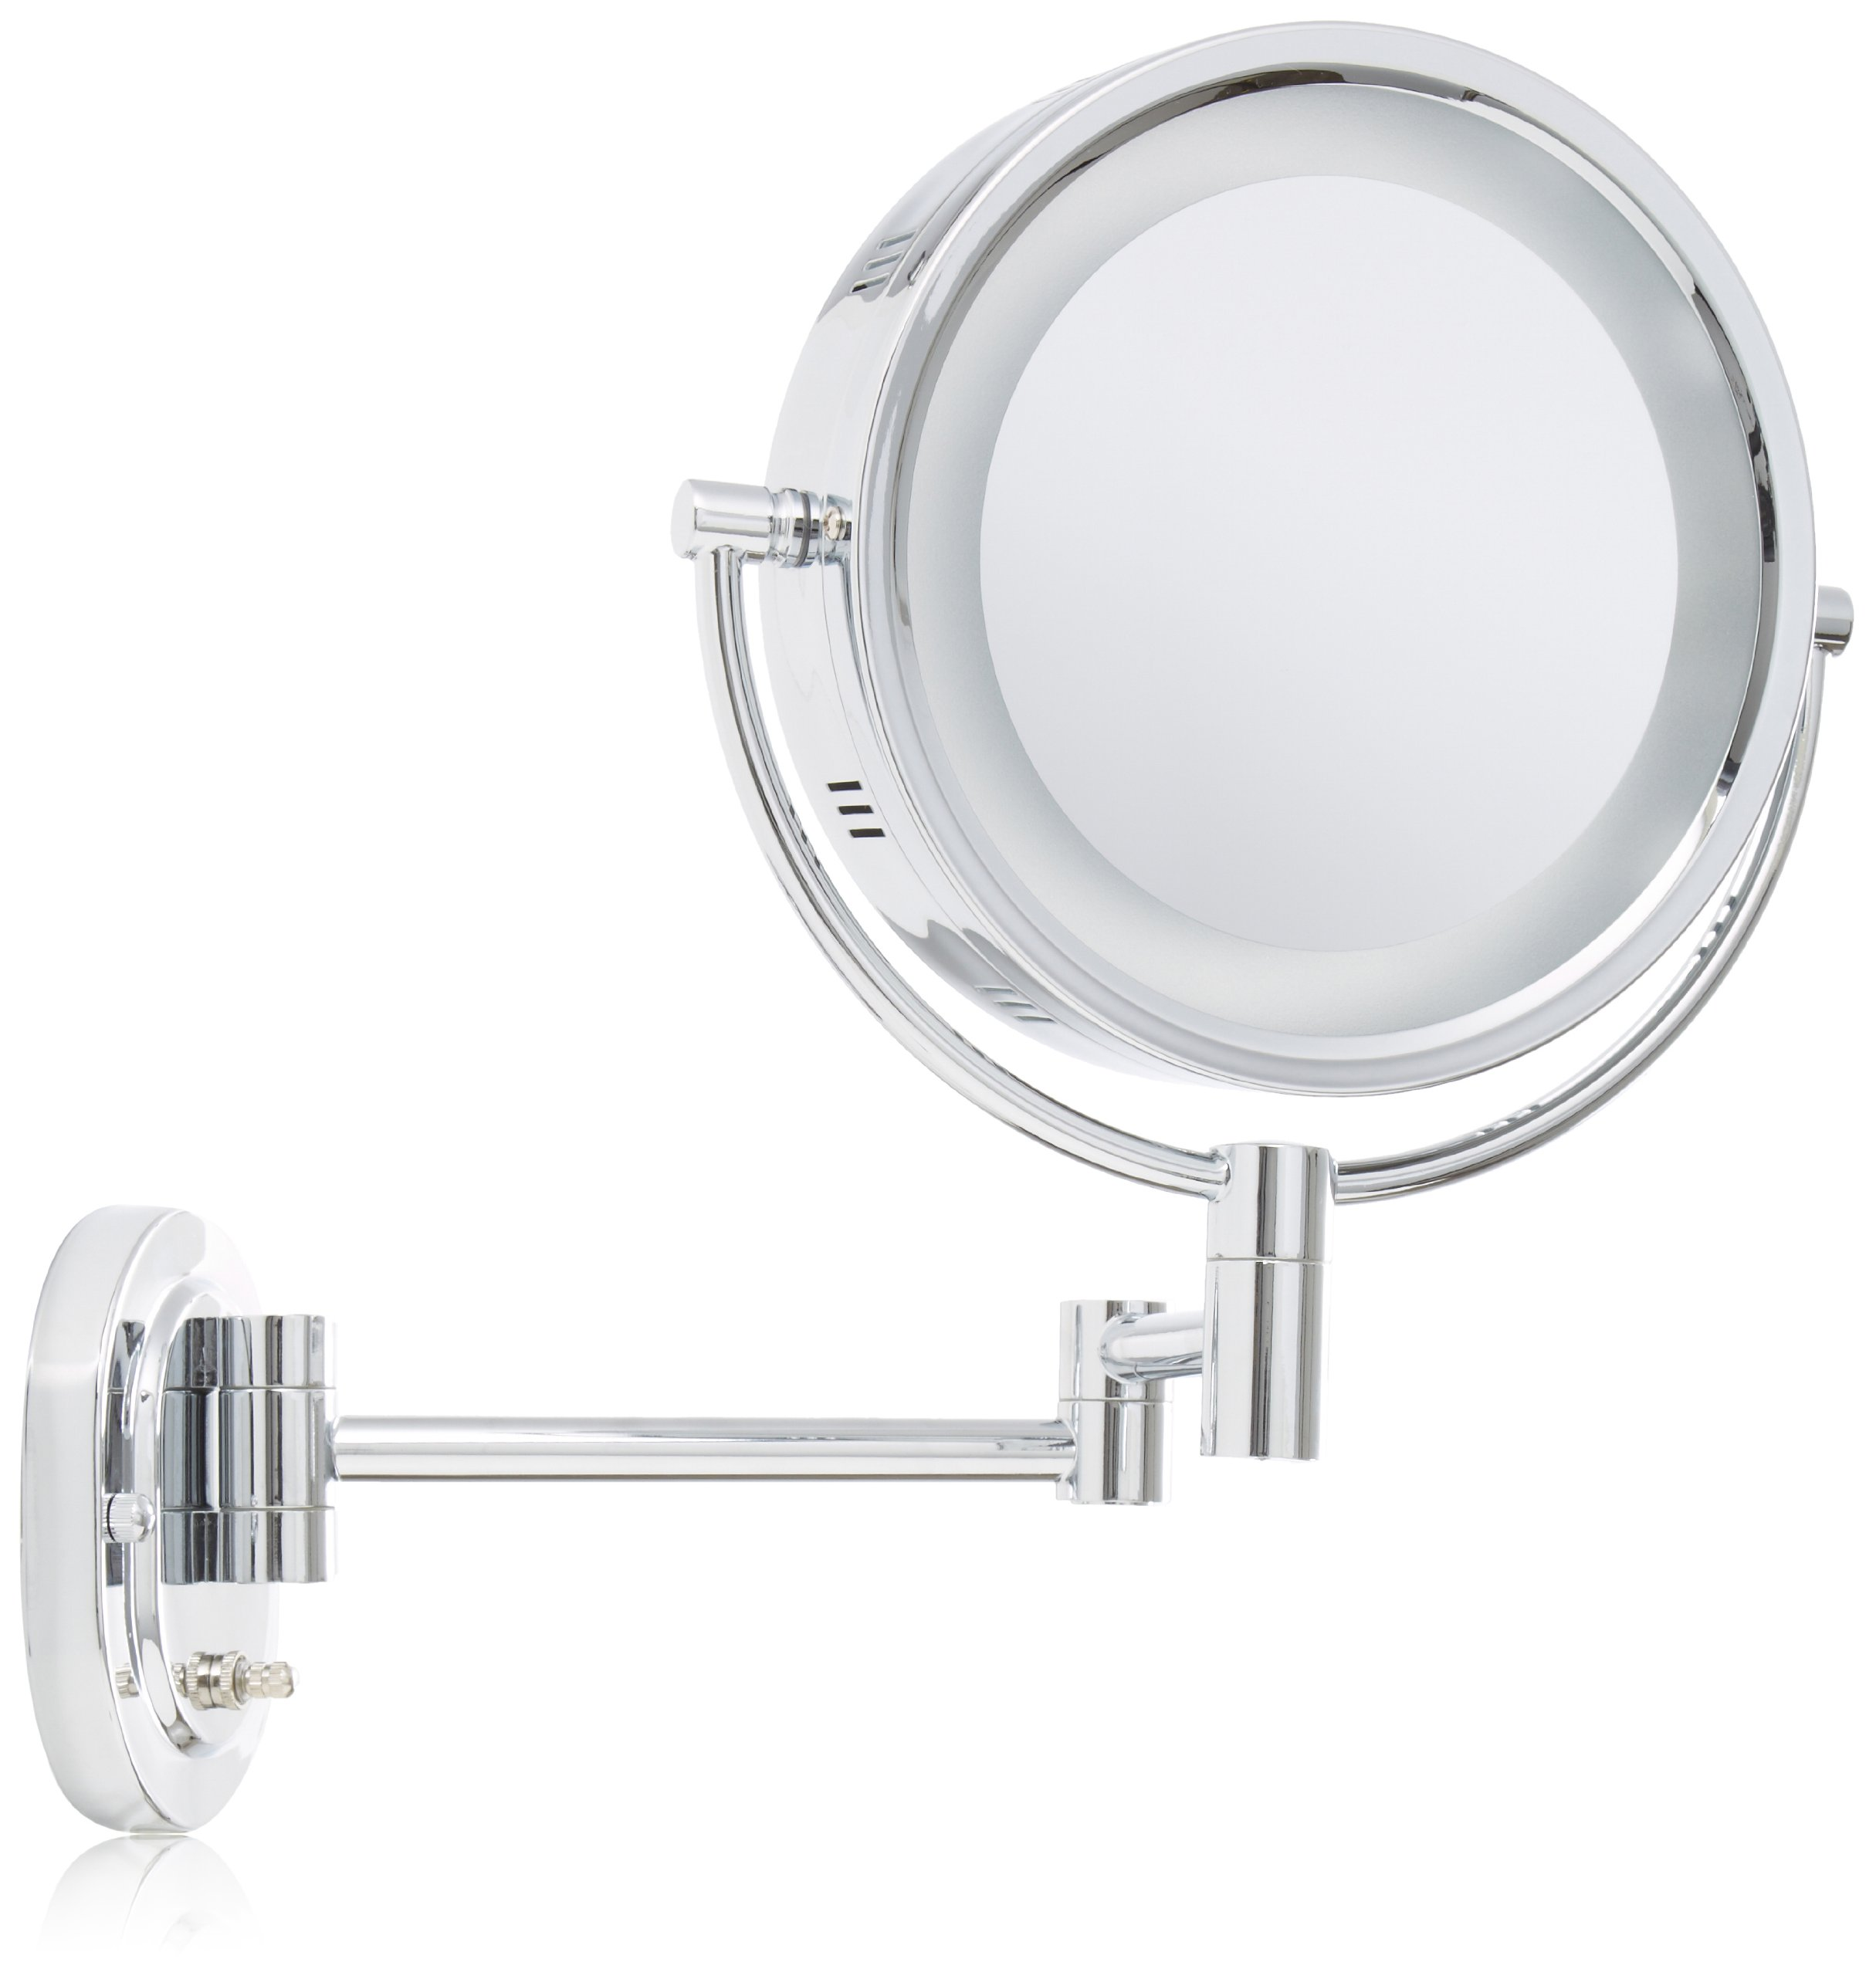 Jerdon HL65C 8-Inch Lighted Wall Mount Makeup Mirror with 5x Magnification, Chrome Finish by Jerdon